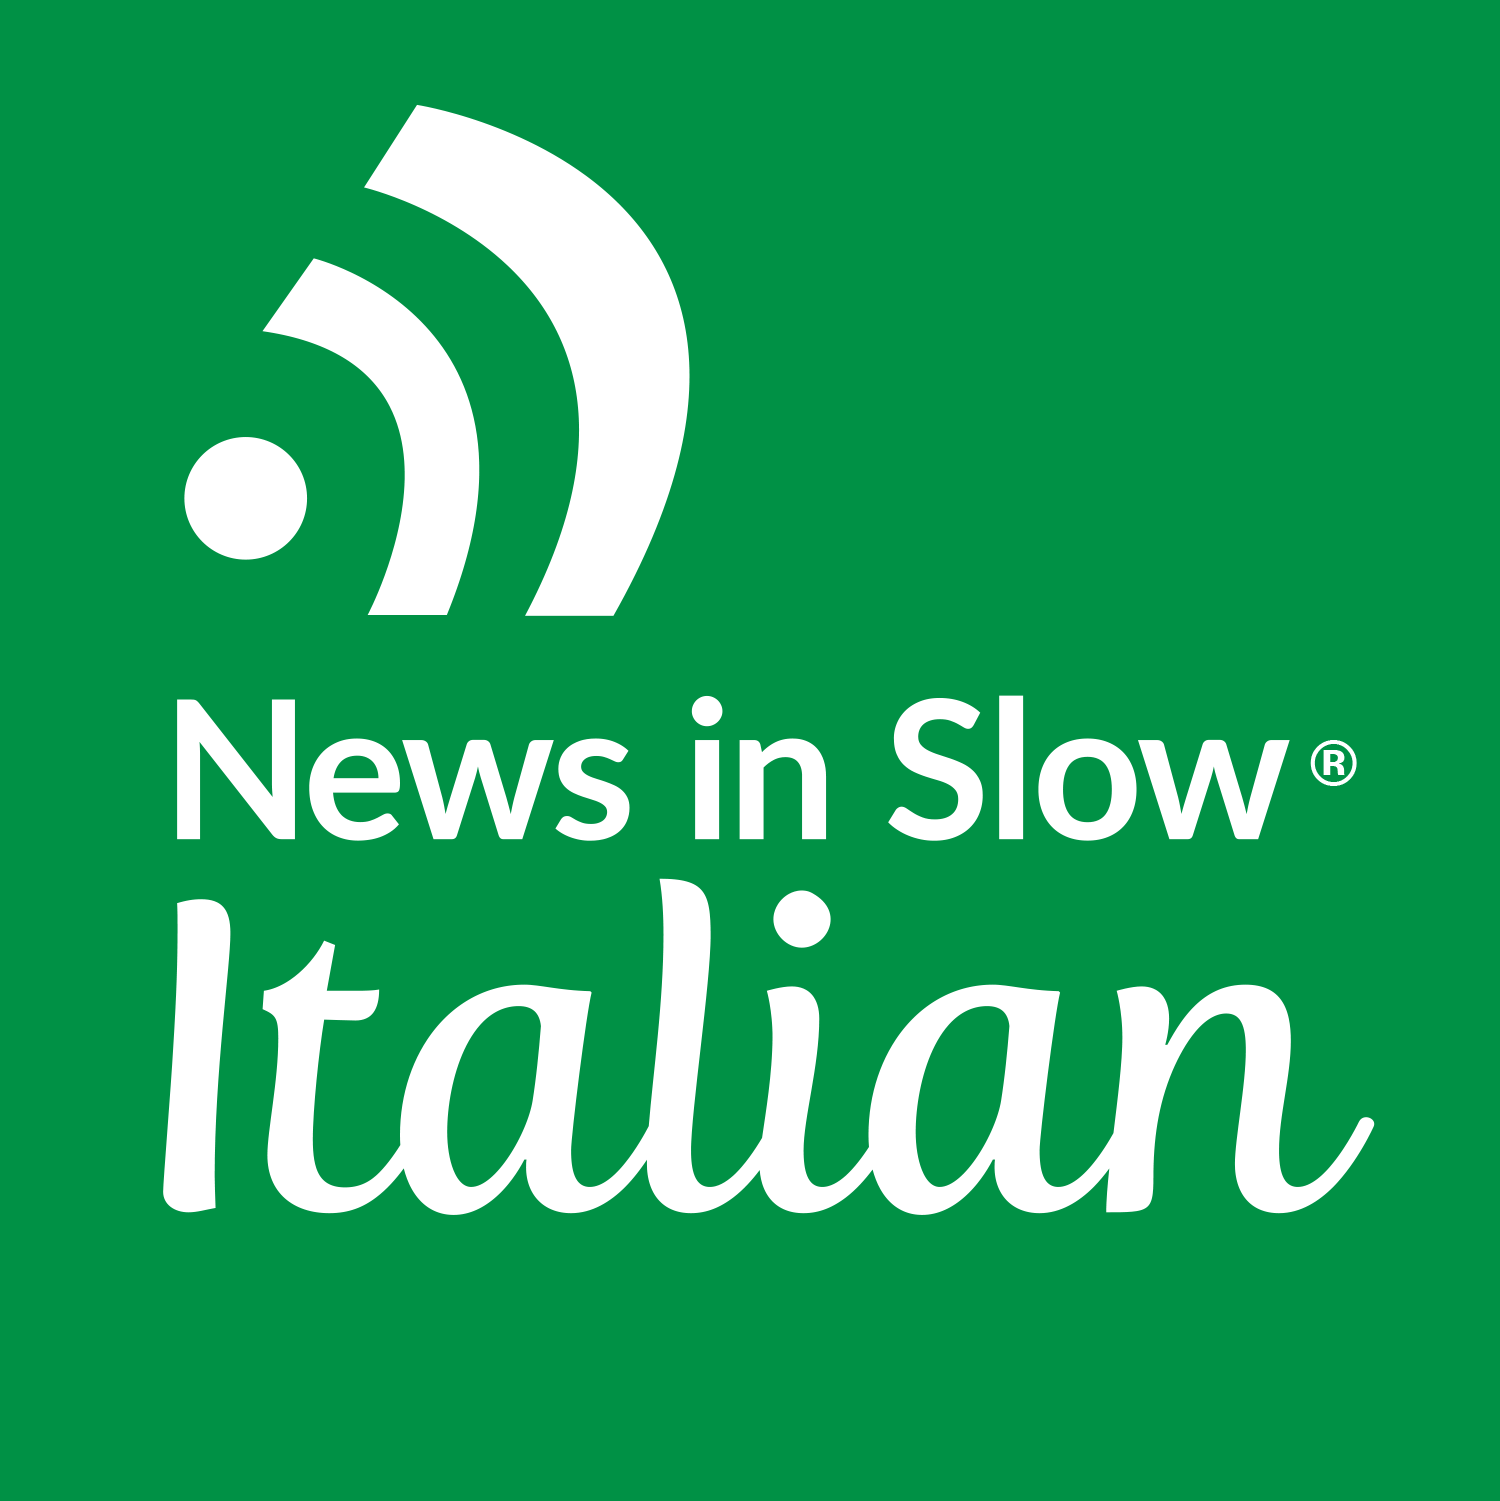 ITALIENSK slow news